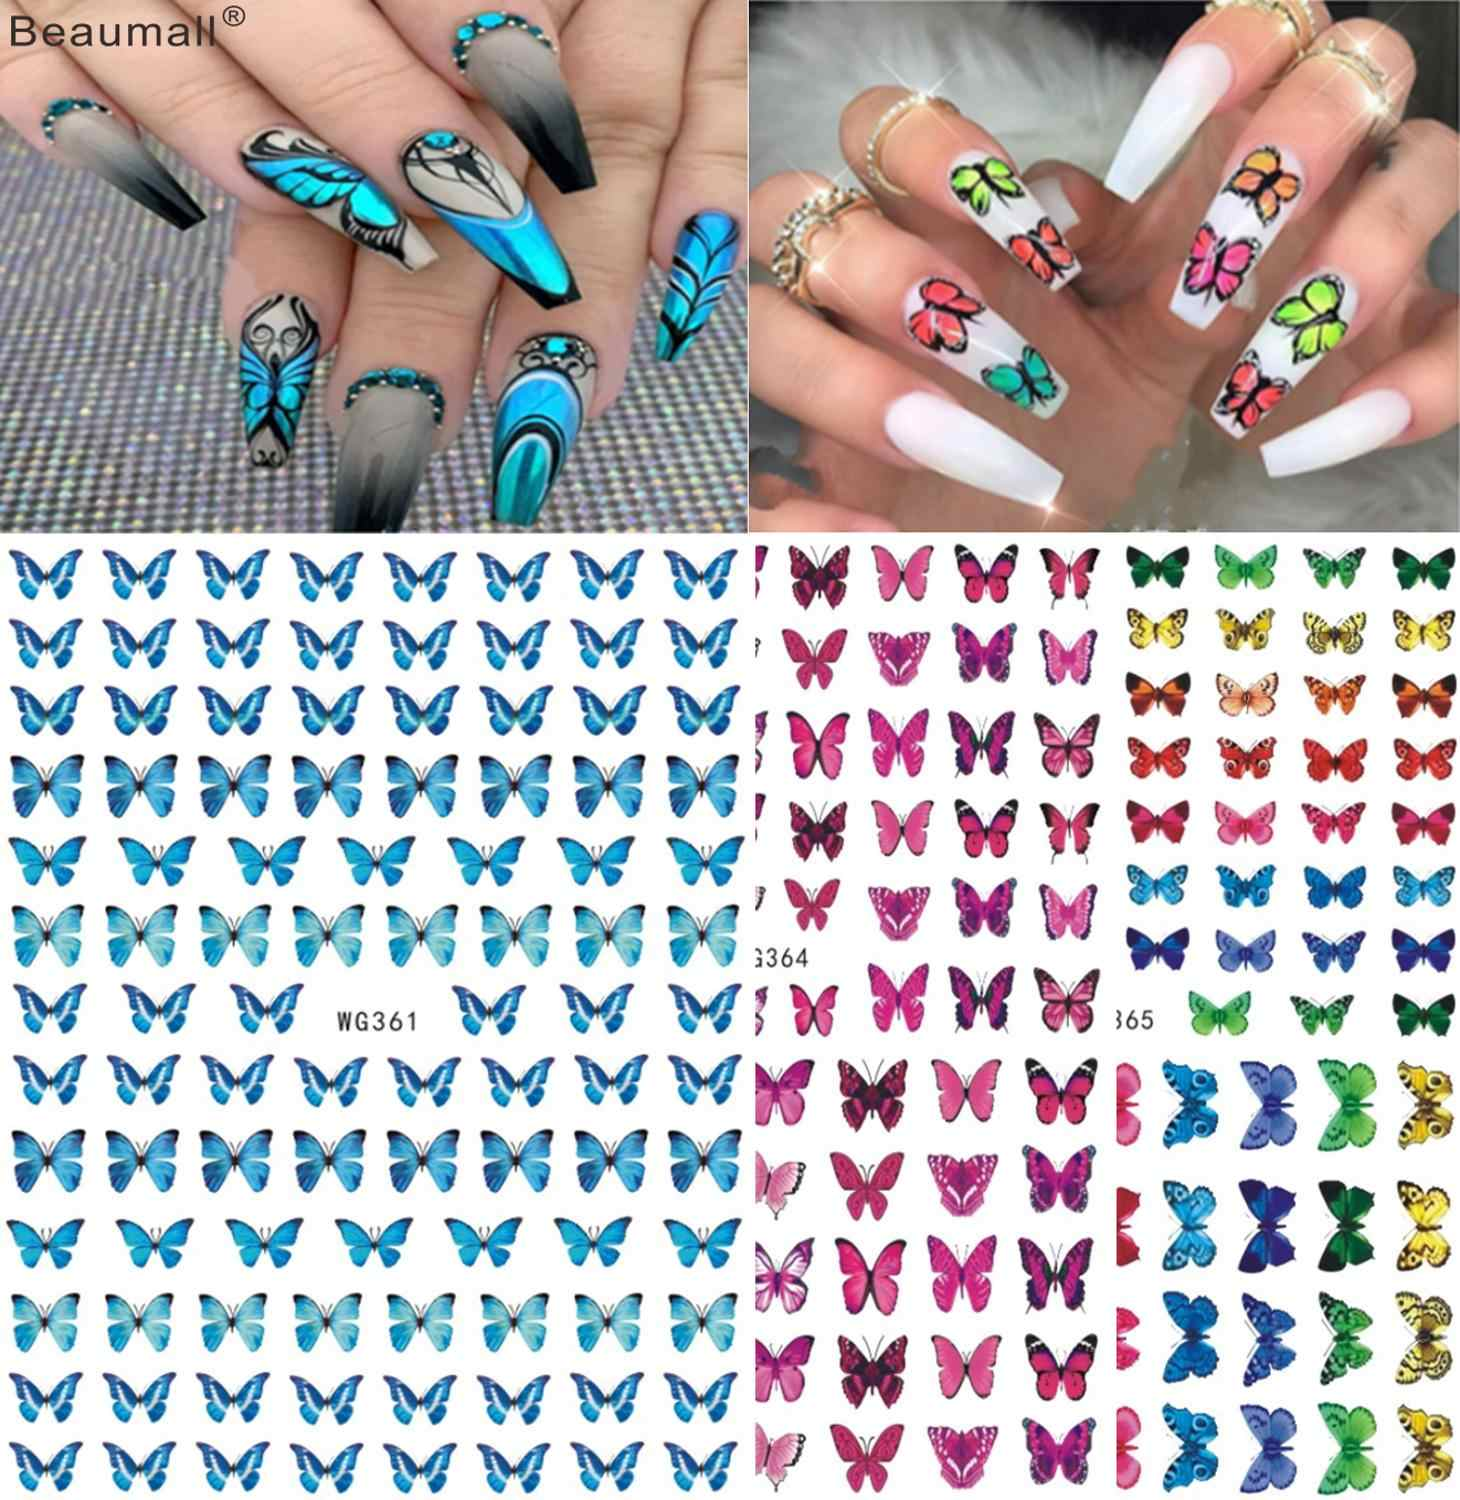 Elegante Vlinder Nails Art Manicure Terug Lijm Decal Decoraties Nail Sticker Voor Nagels Tips Beauty